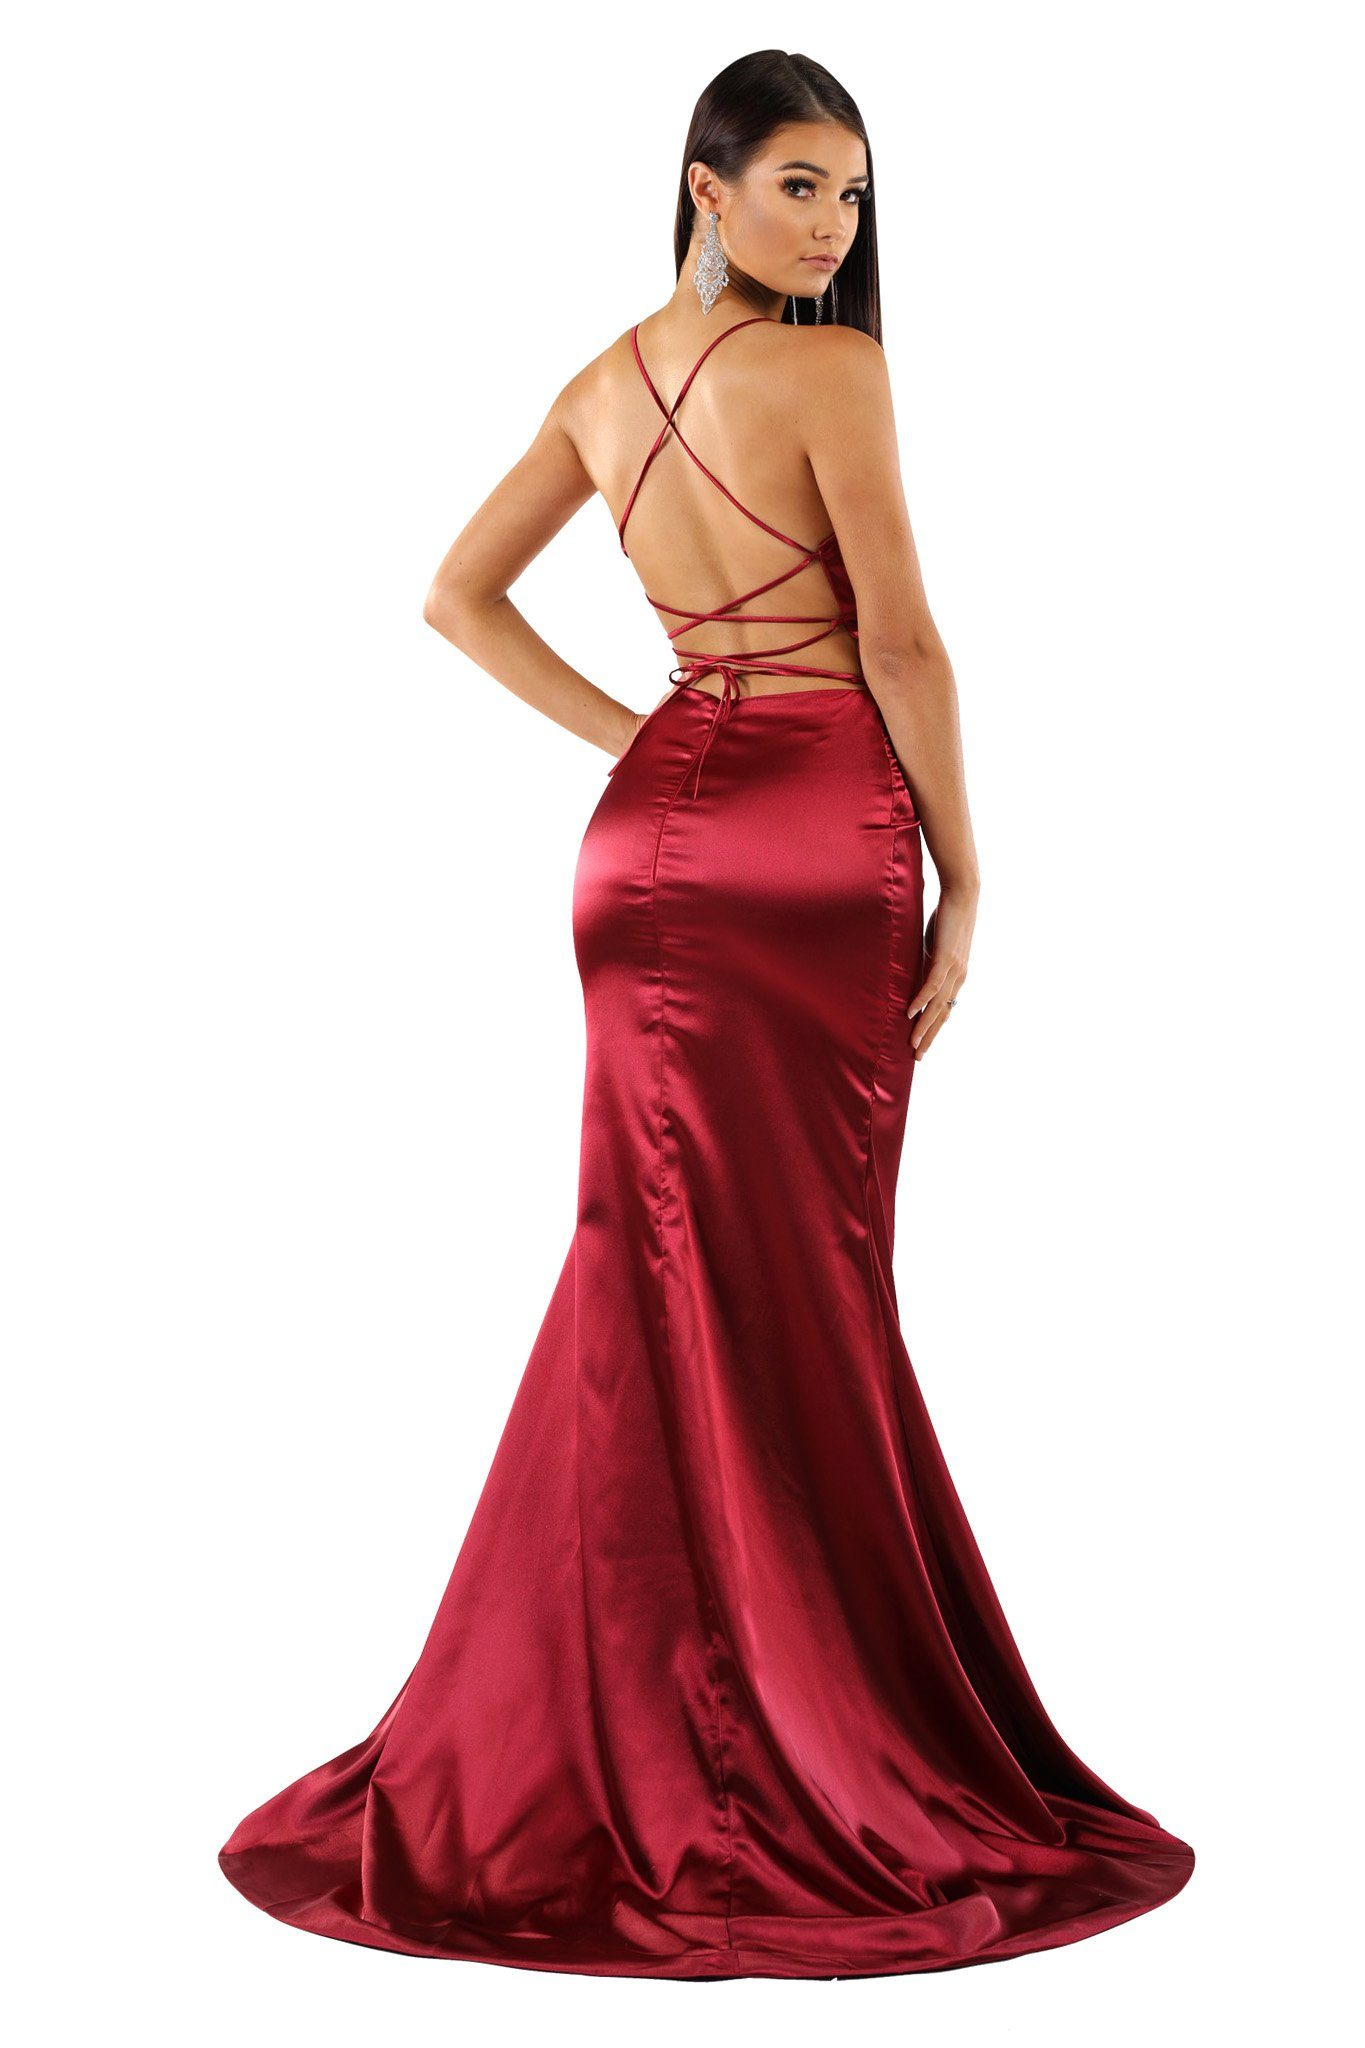 Burgundy satin formal long maxi dress deep V plunging neckline, high front left slit, lace-up straps on open back, floor sweep train